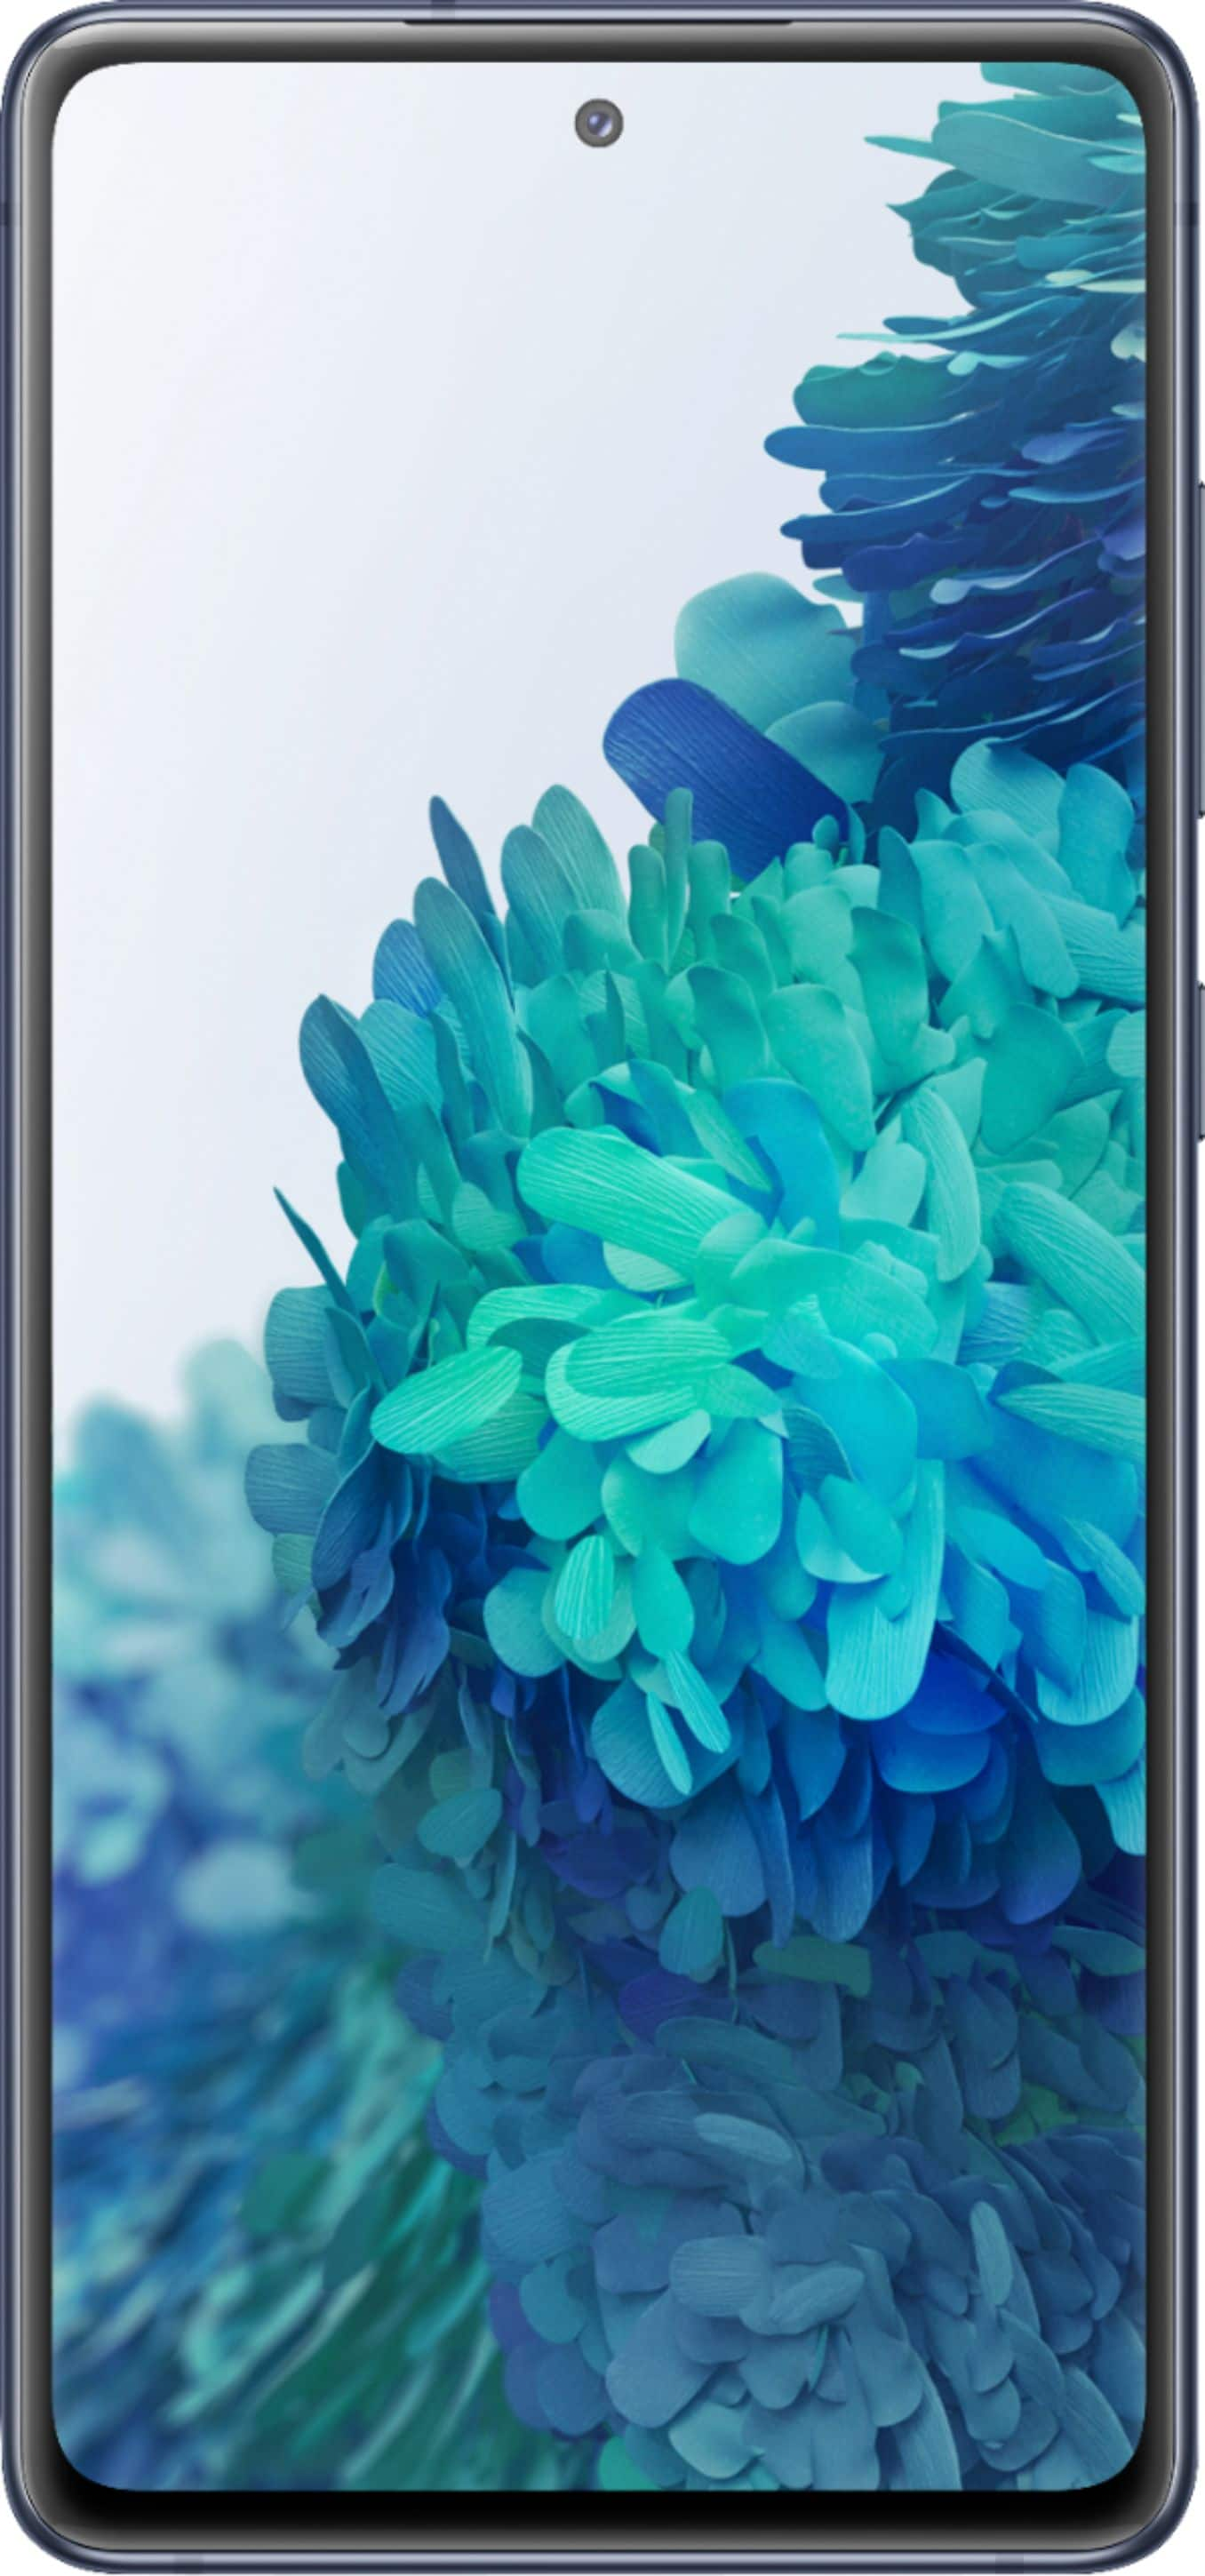 Pre-order Samsung Galaxy S20 FE 5G for free via bill credit with 24-month installments when you add a Sprint line at Best Buy